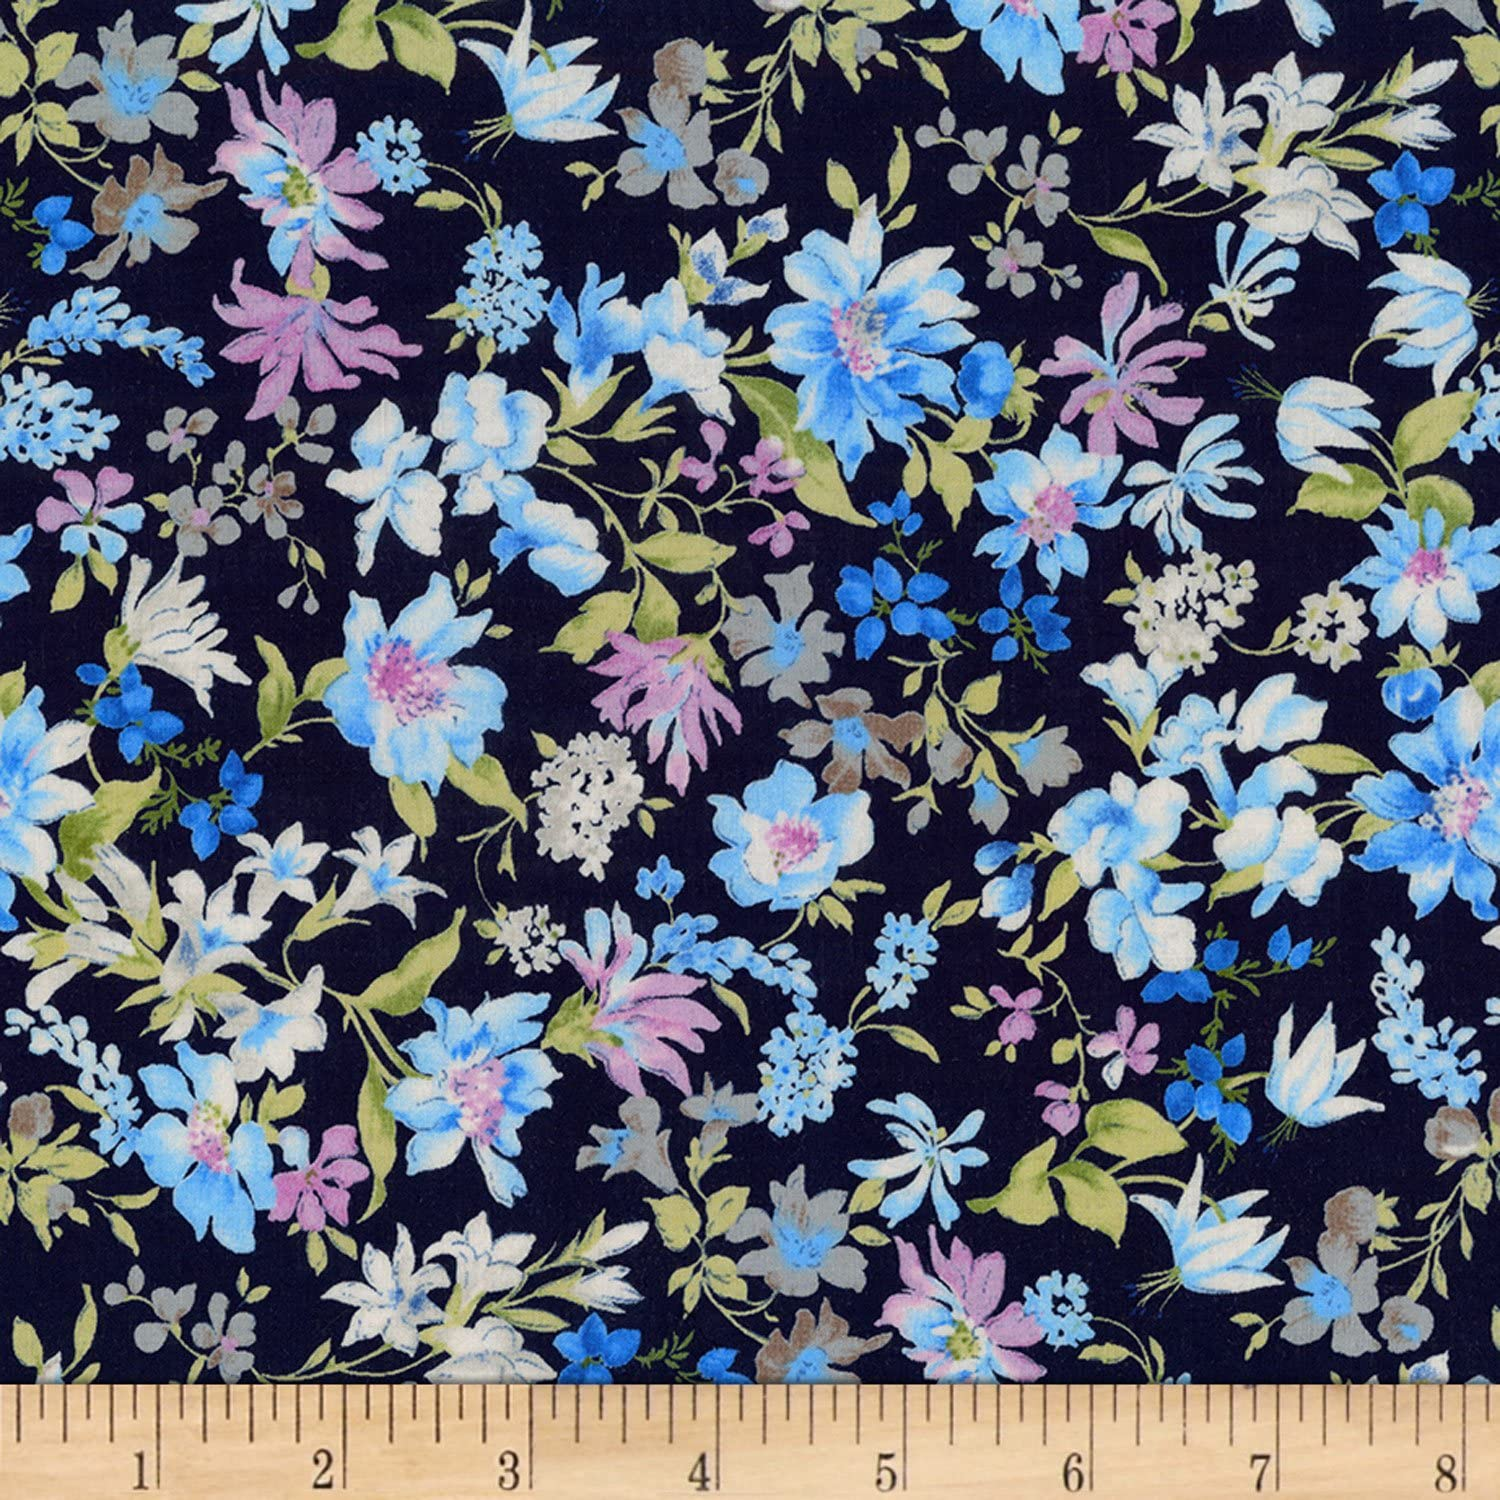 Kaufman Sevenberry: Petite Garden Lawn Flowers Navy Fabric by The Yard